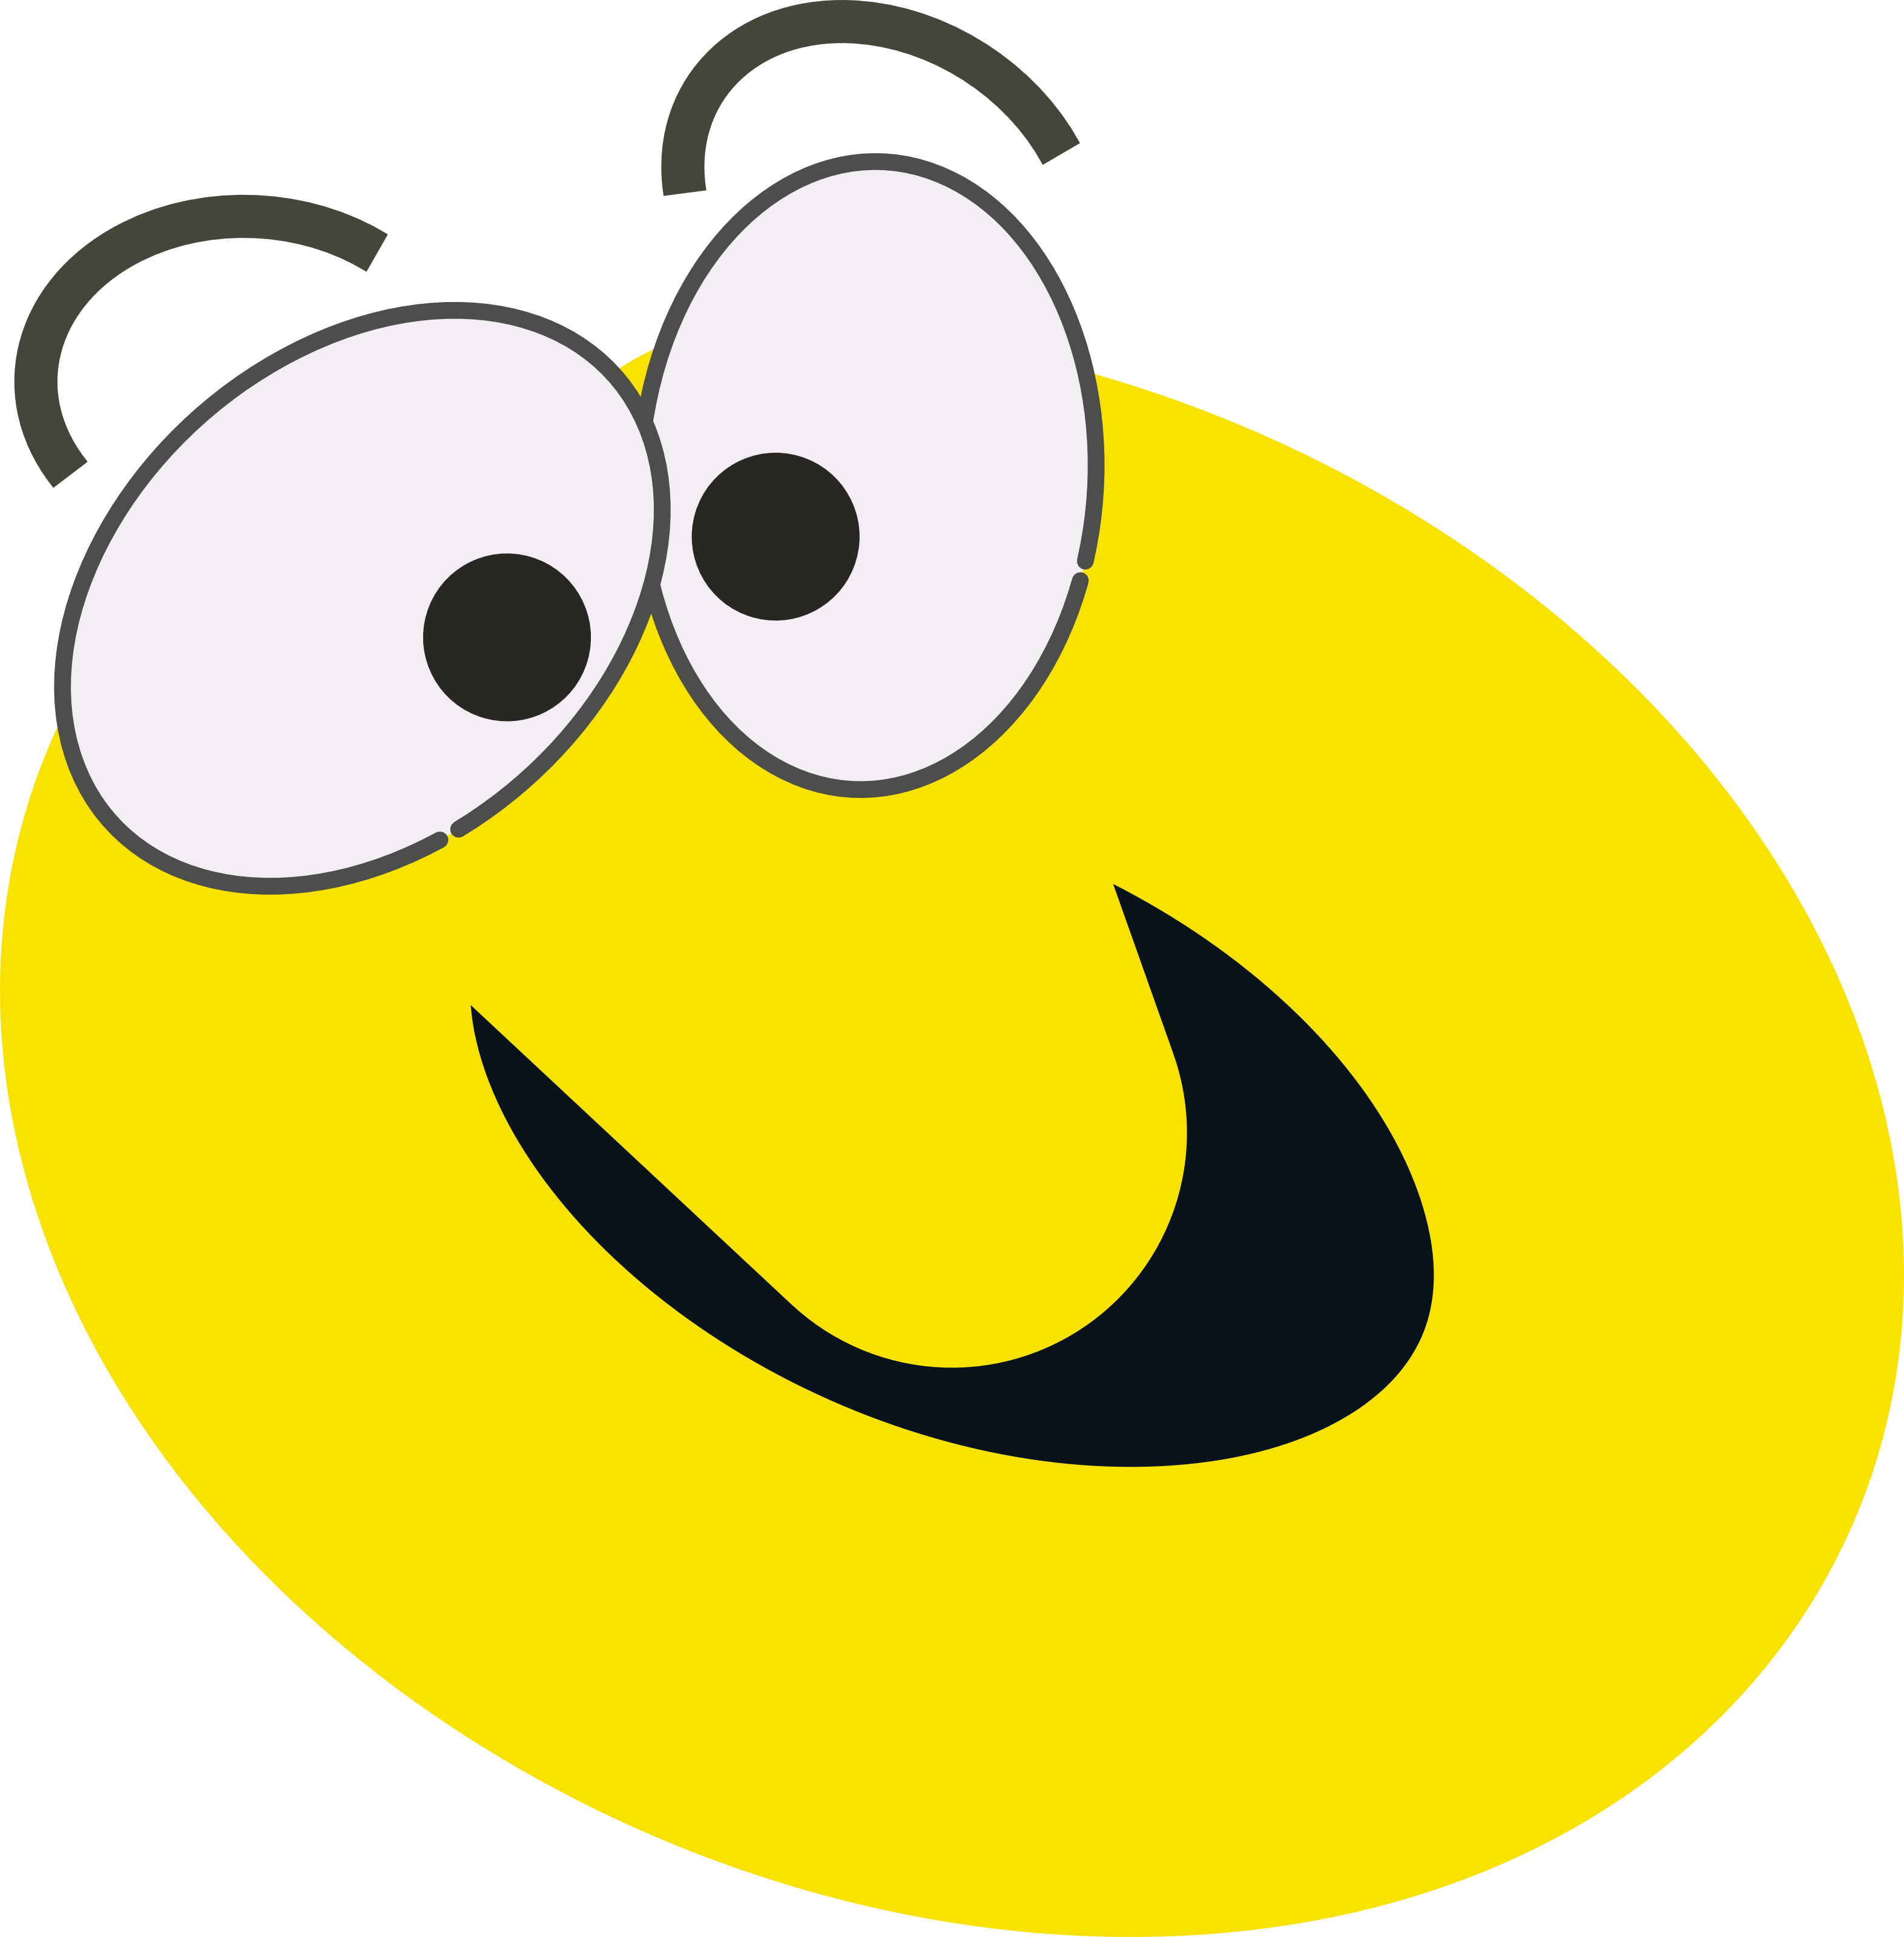 Free Download Smiley Face With Thumbs Up Clip Art Lowrider Car ...